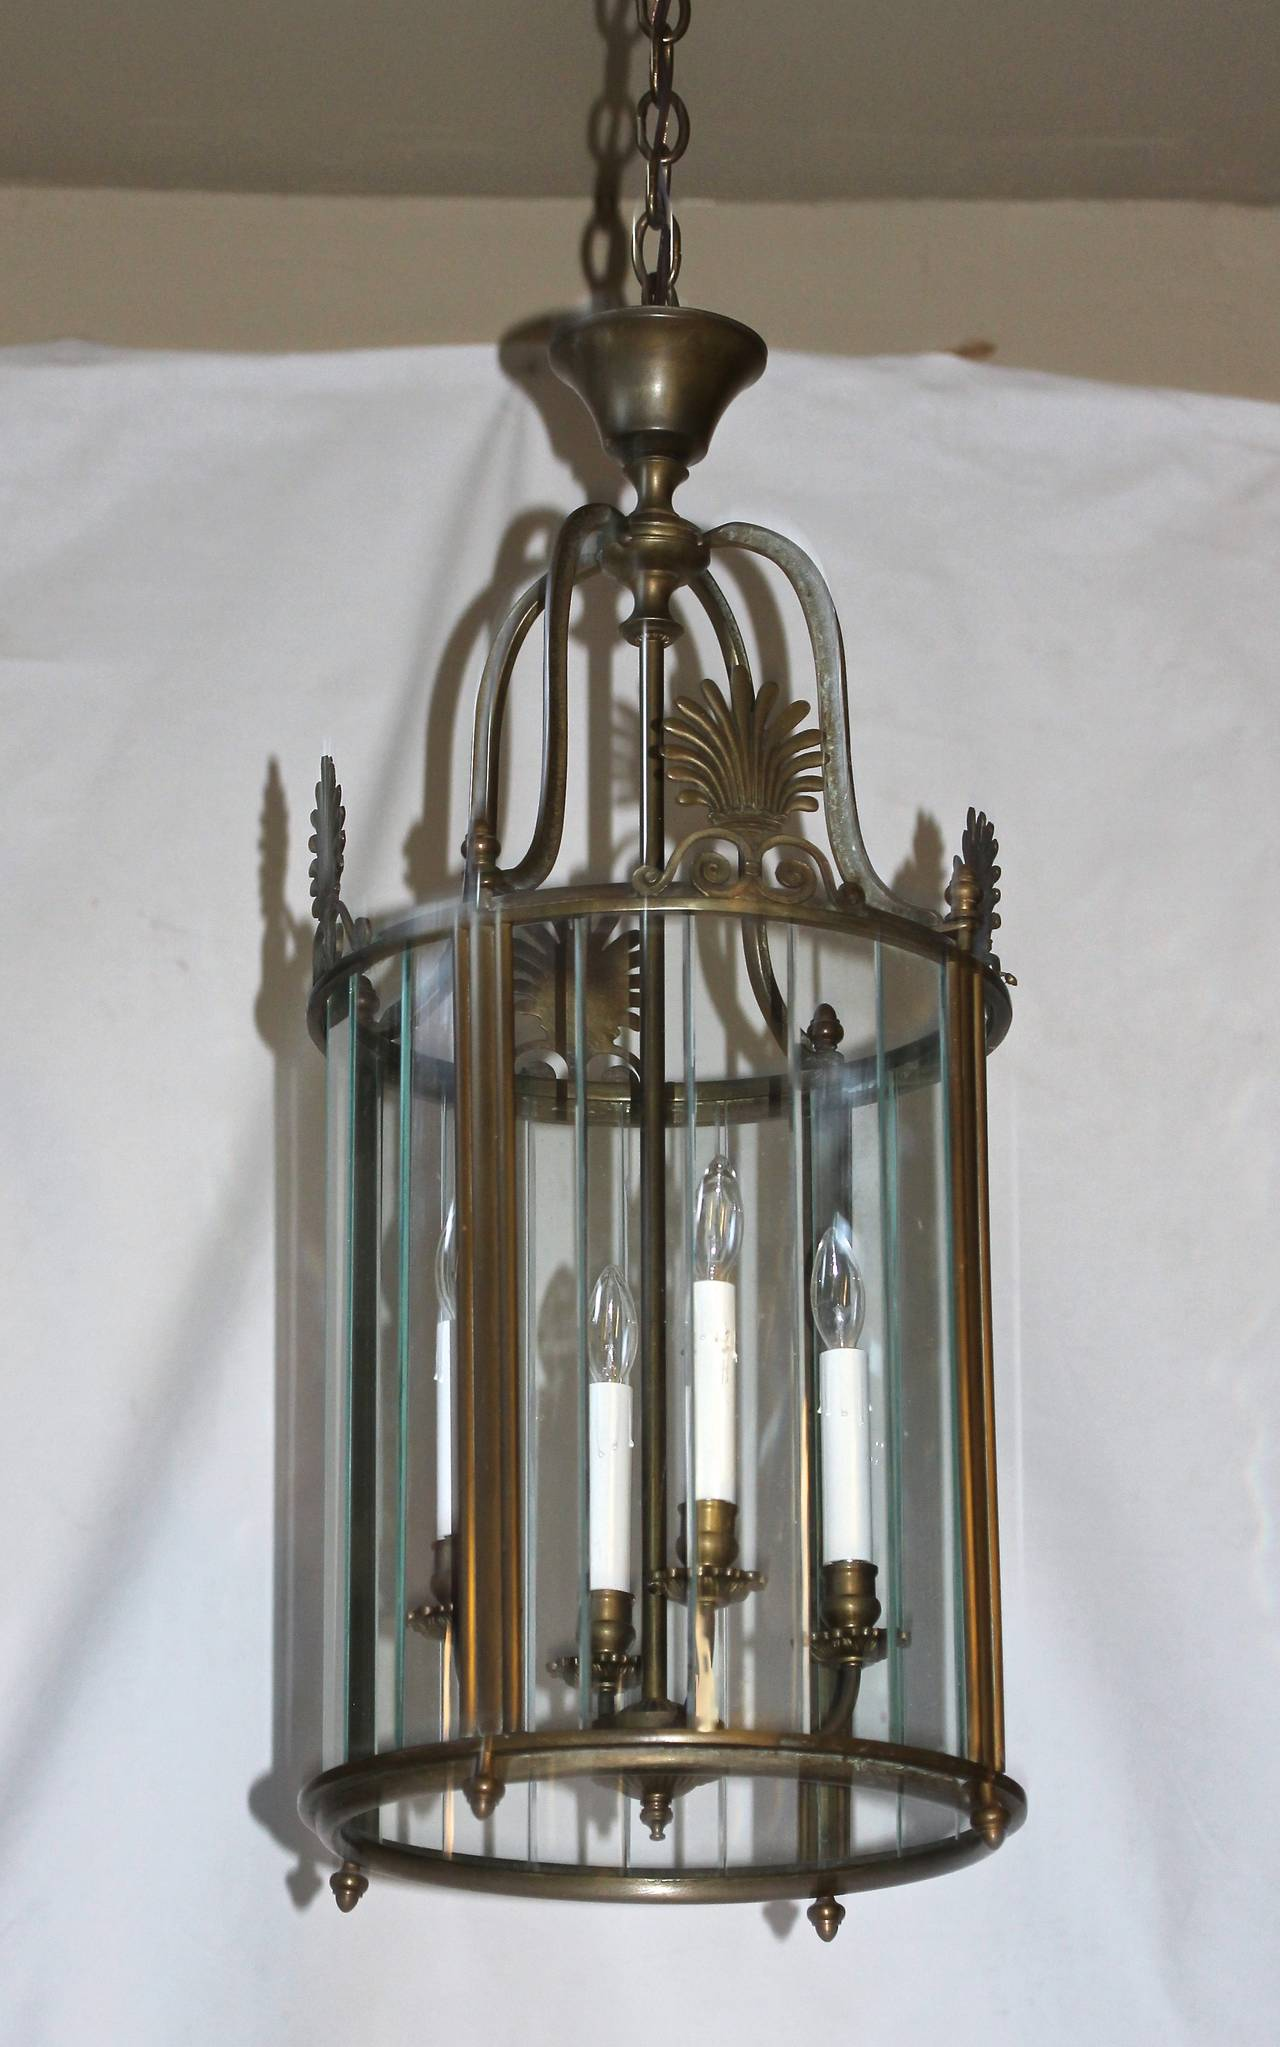 Large Italian Neoclassic Bronze Hall Lantern Pendant Light For Sale 6